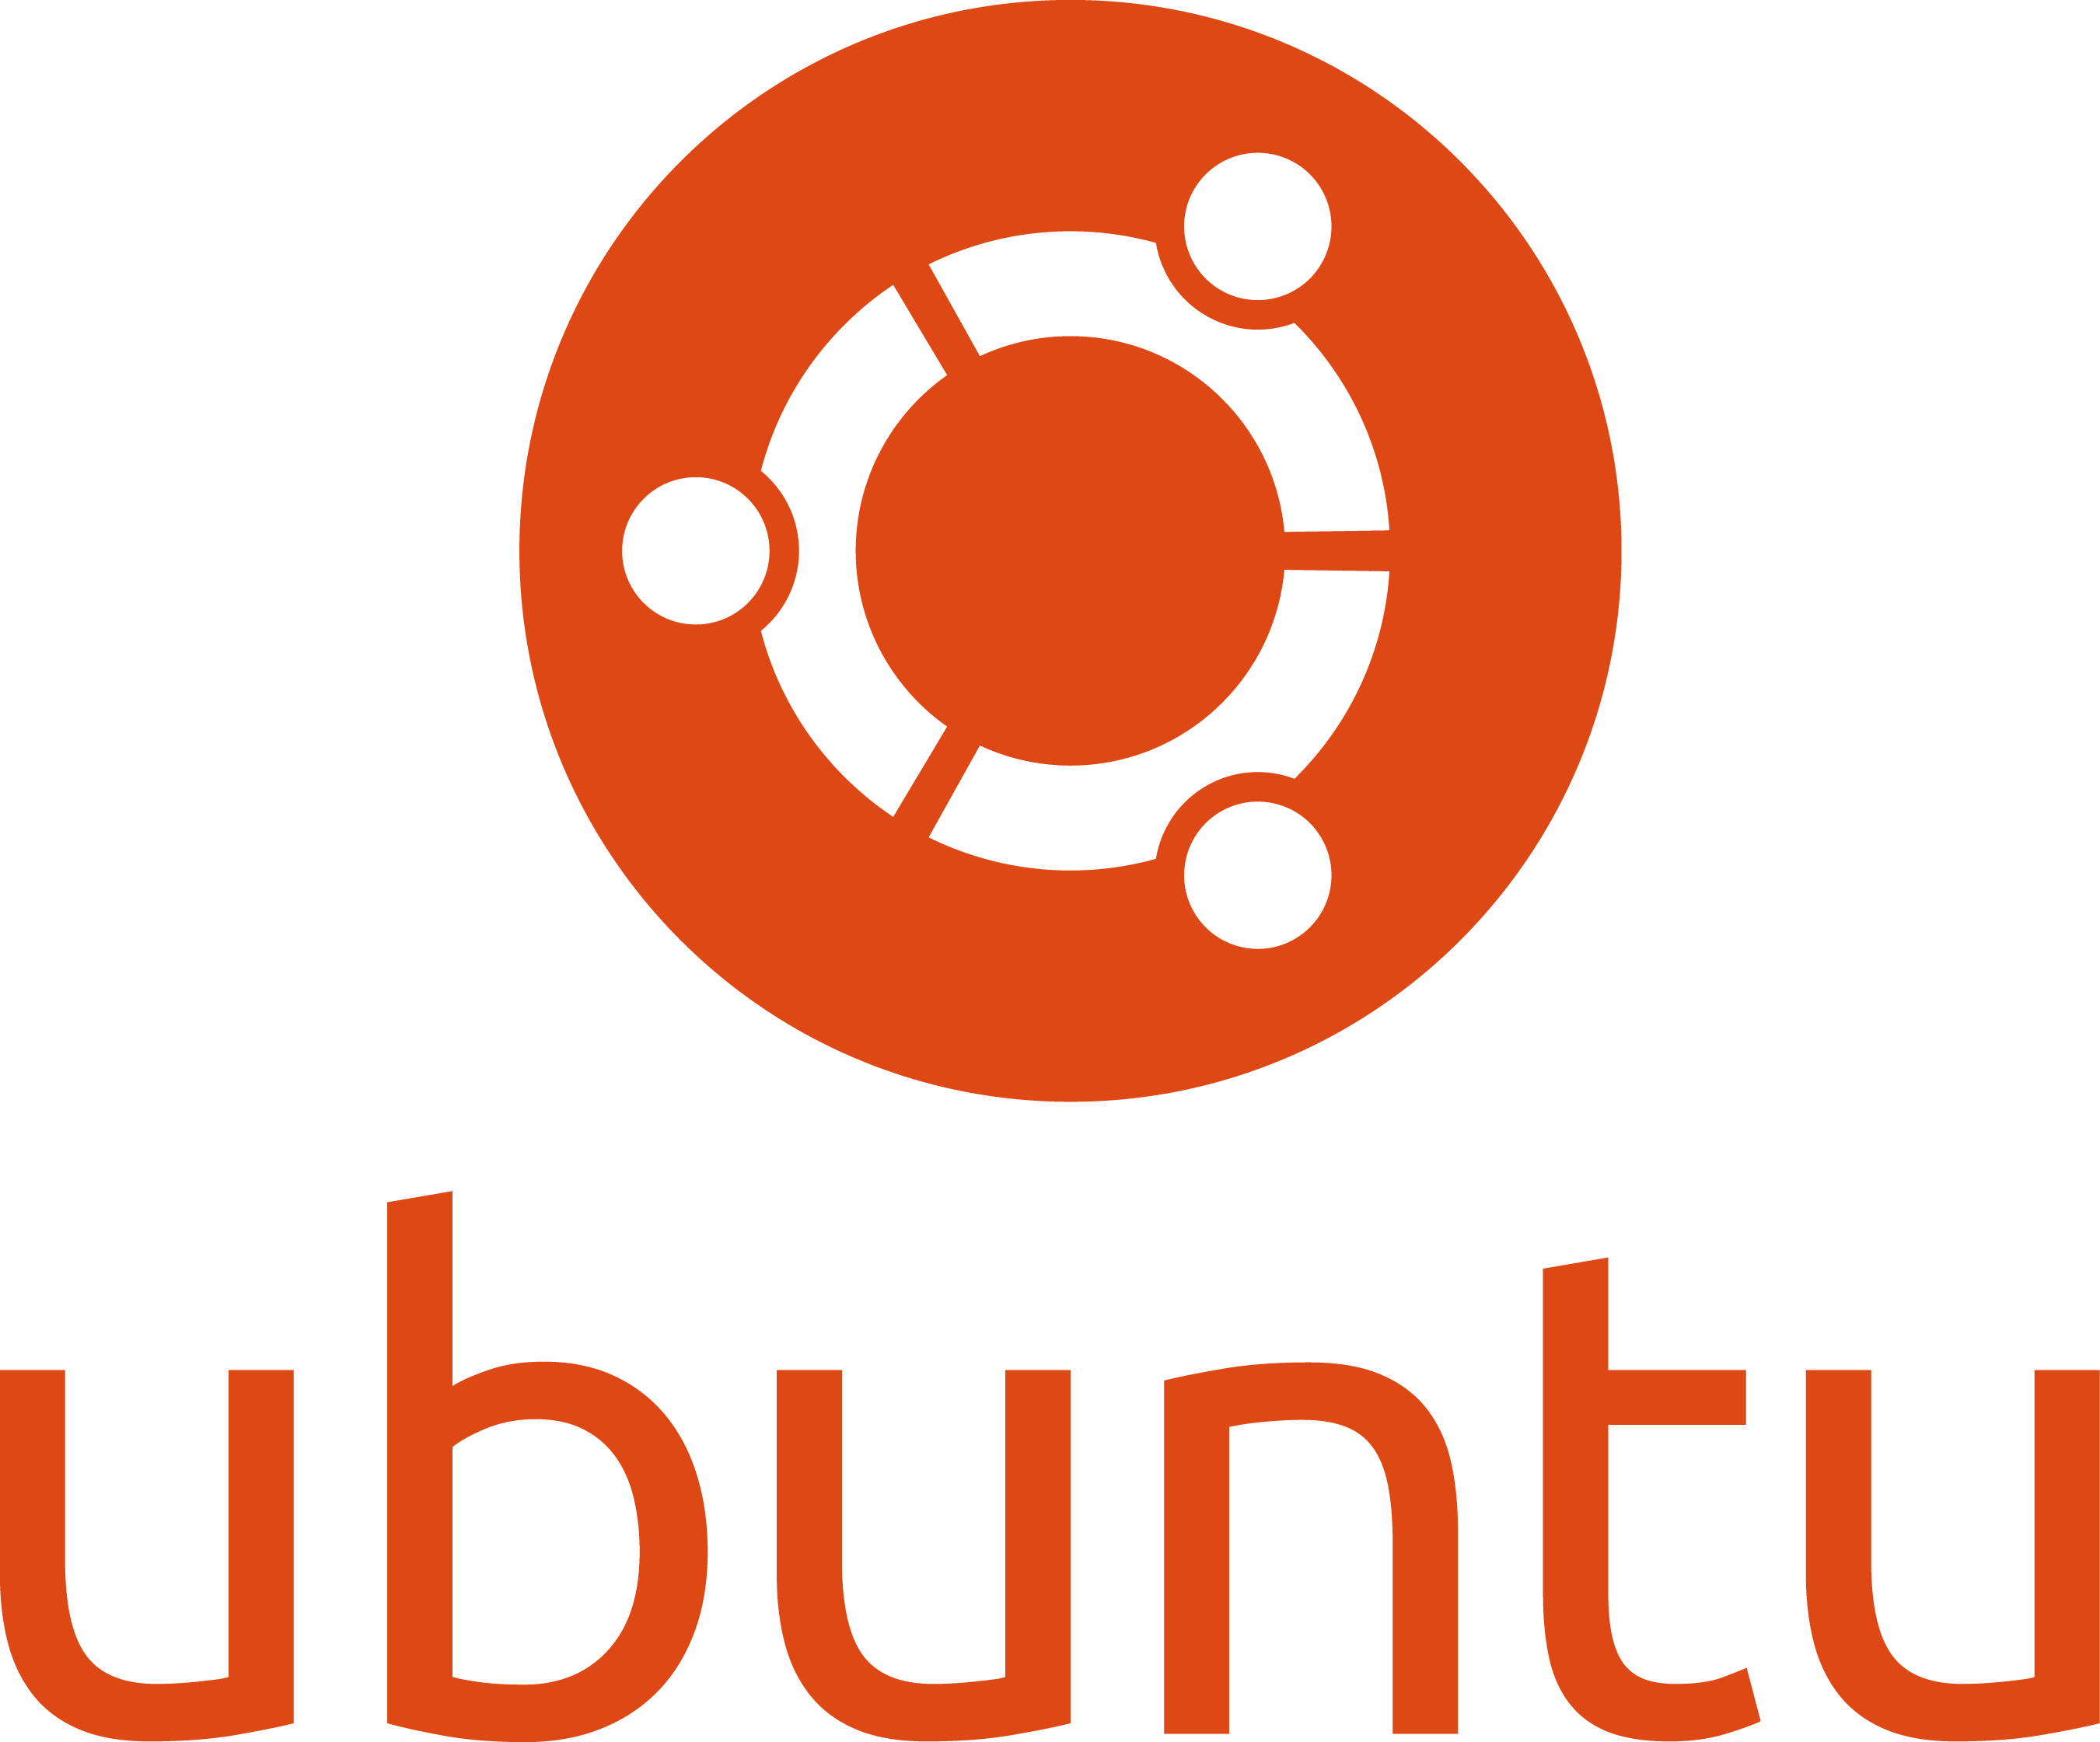 Linux Ubuntu Logo Vector Icon Template Clipart Free Download